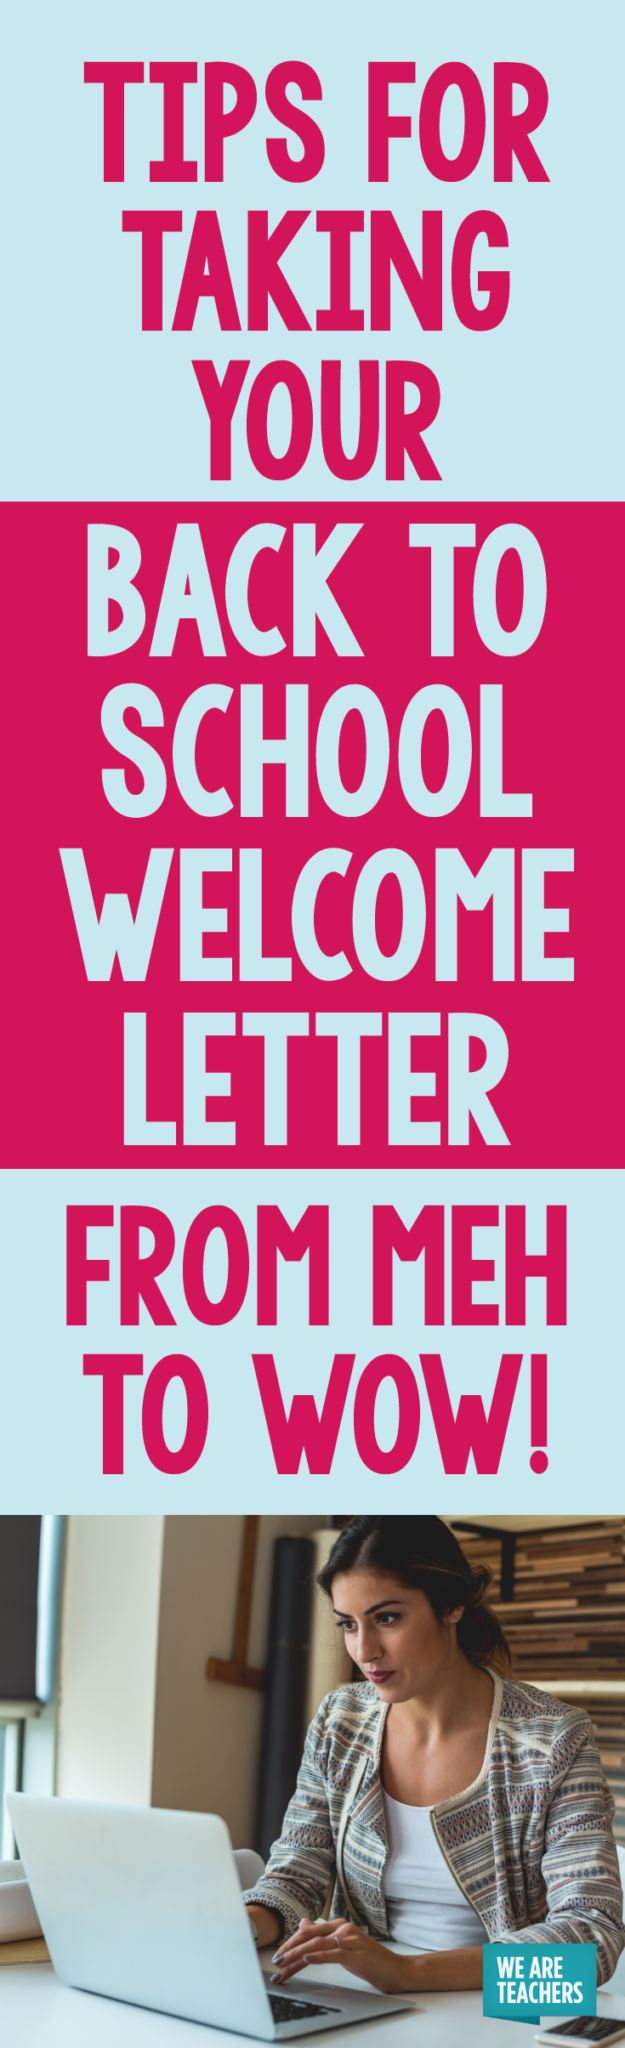 Tips For Taking Your Back to School Welcome Letter from Meh to Wow! - WeAreTeachers